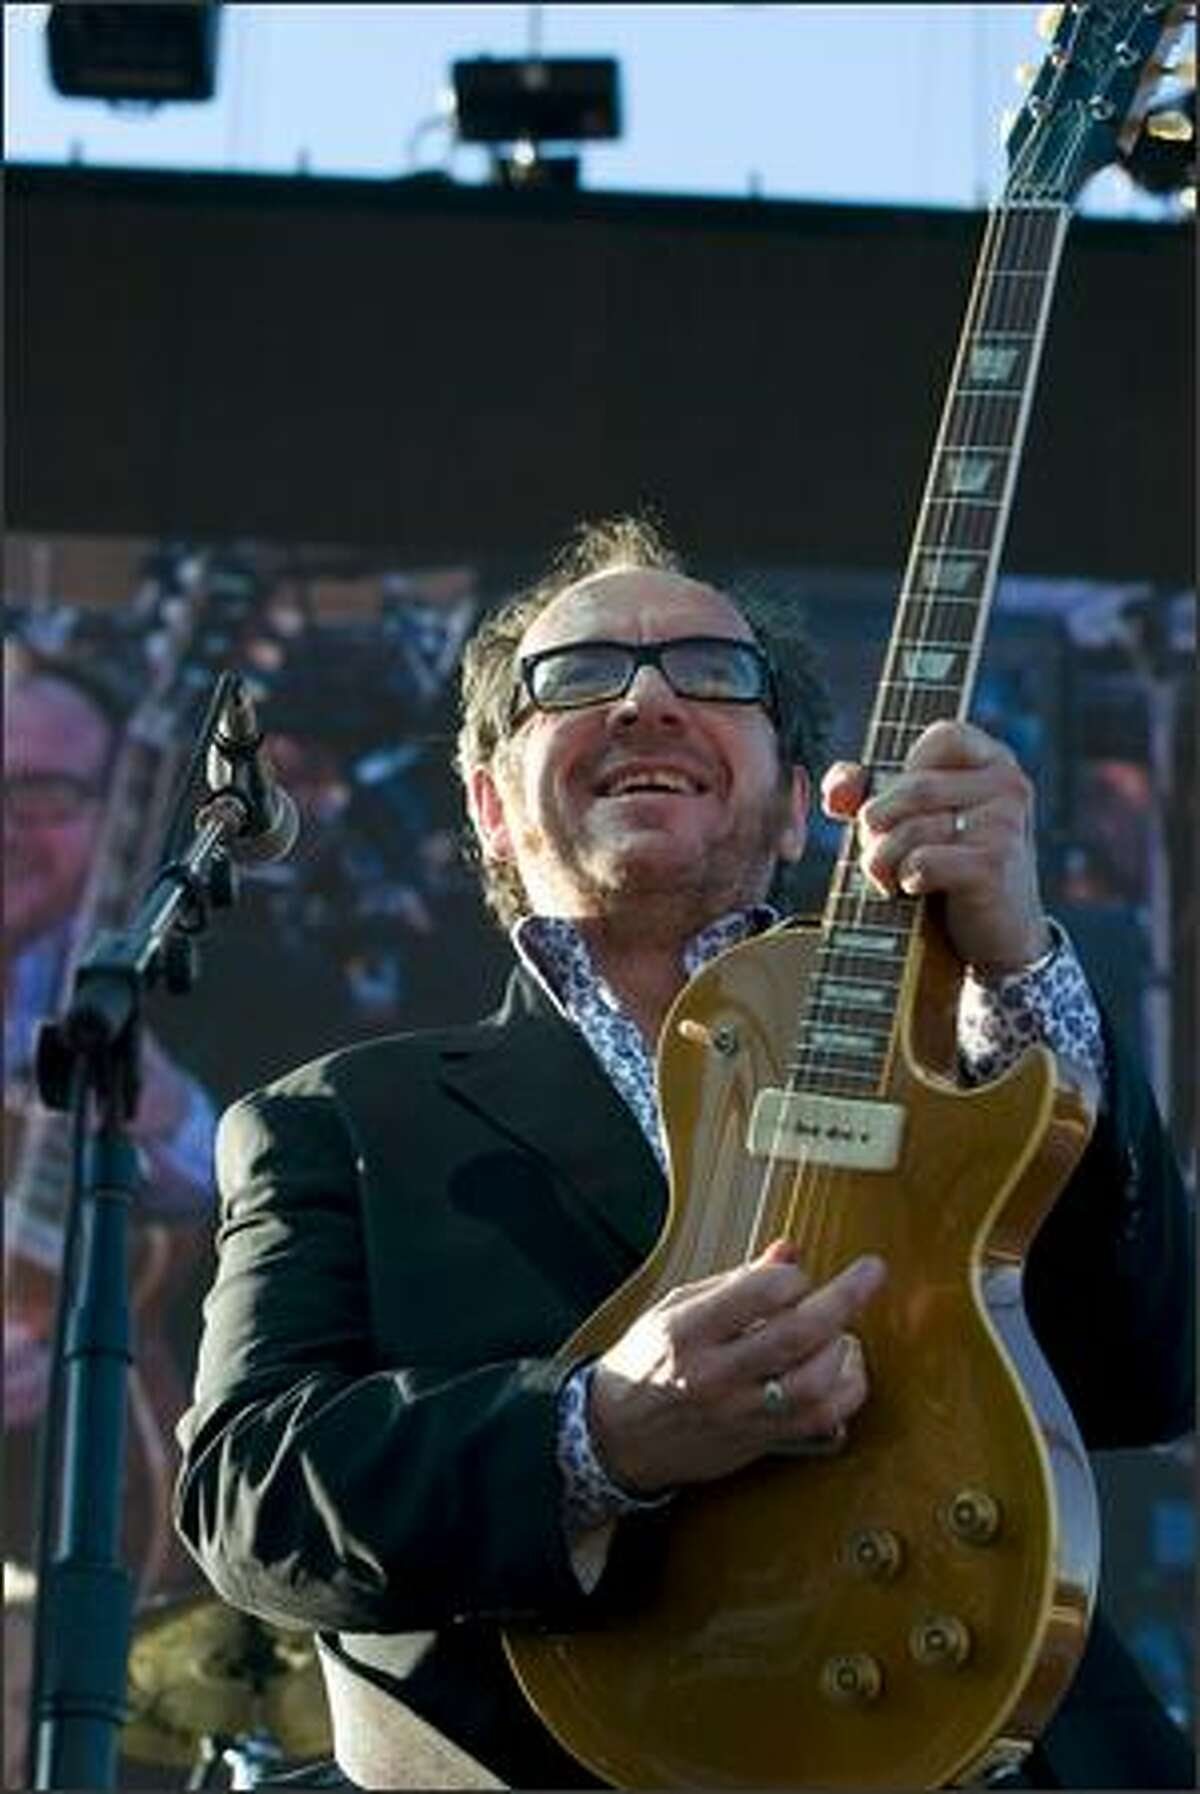 Elvis Costello performs with the Imposters at the Gorge Amphitheatre.